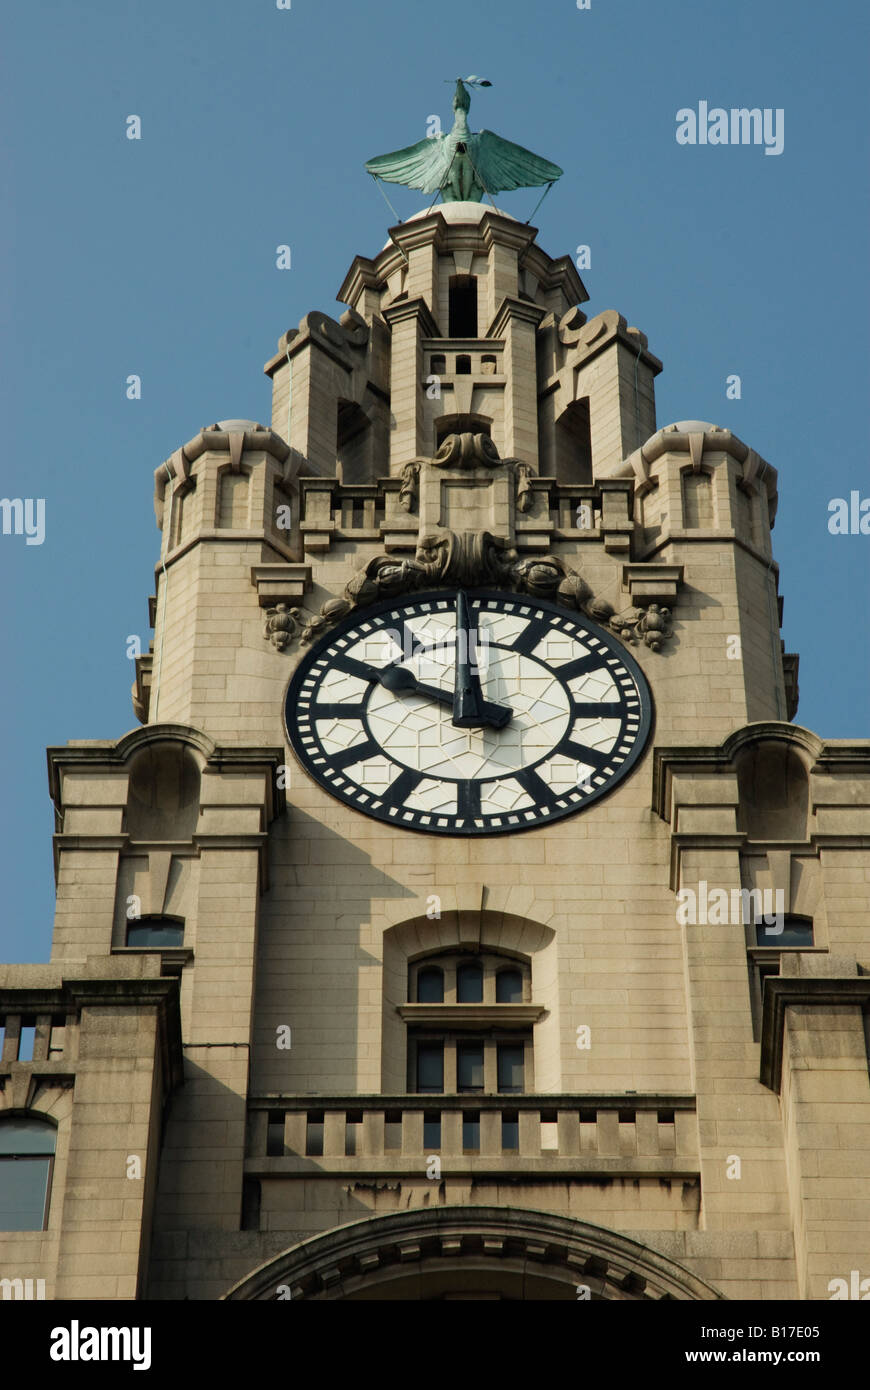 Liver bird on top of the Liverbuilding at 10 - Stock Image